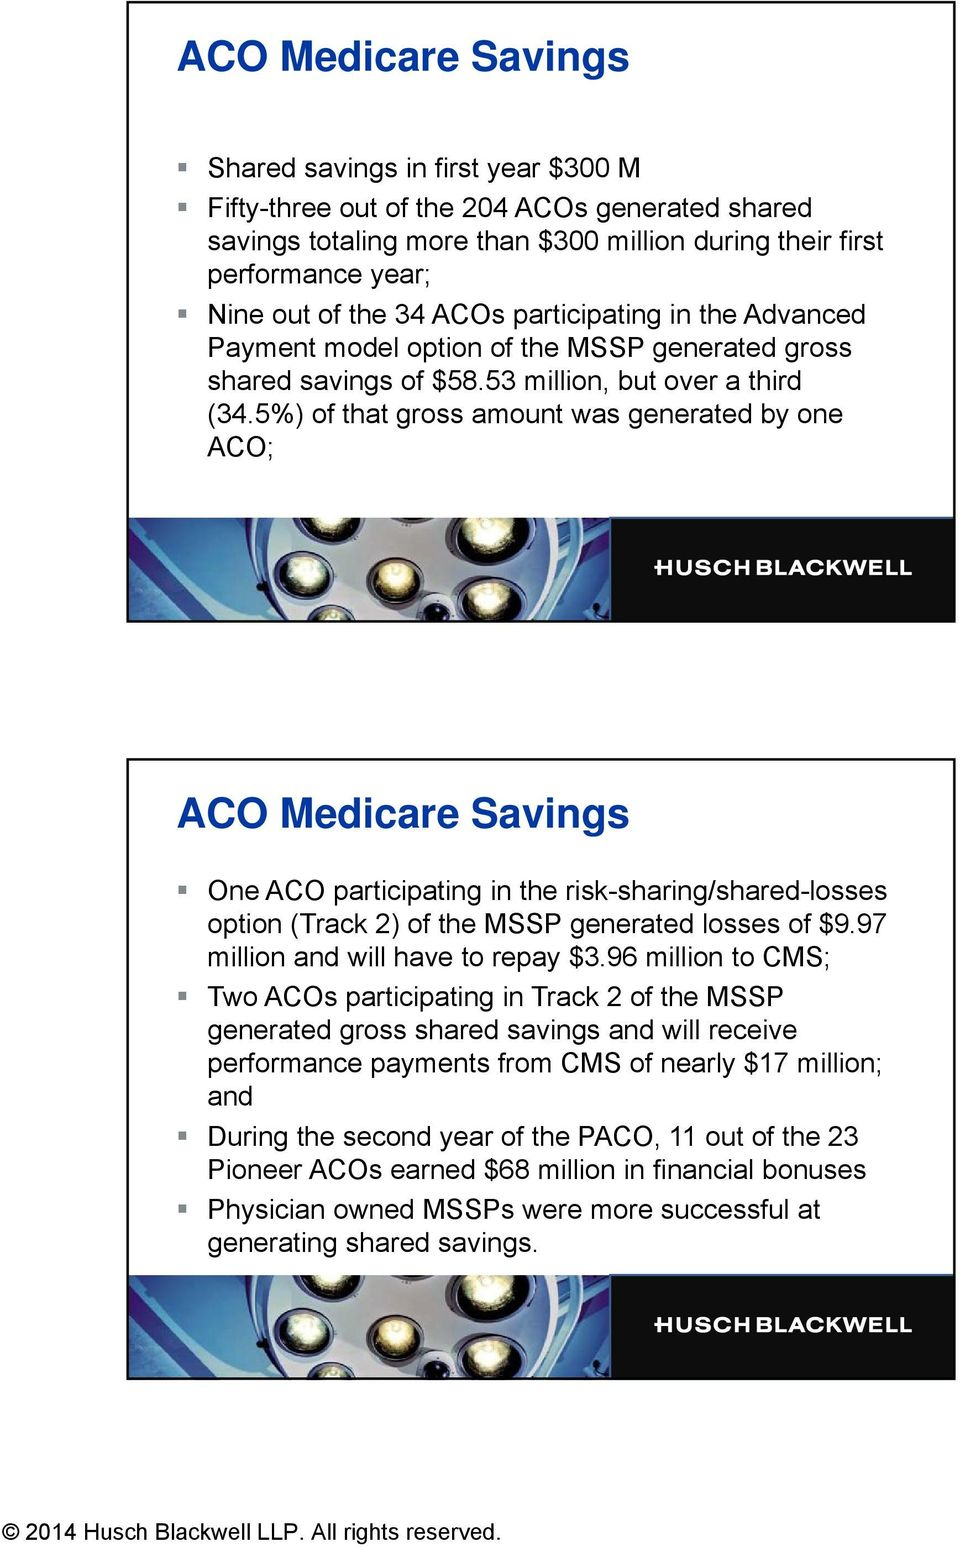 5%) of that gross amount was generated by one ACO; ACO Medicare Savings One ACO participating in the risk-sharing/shared-losses option (Track 2) of the MSSP generated losses of $9.